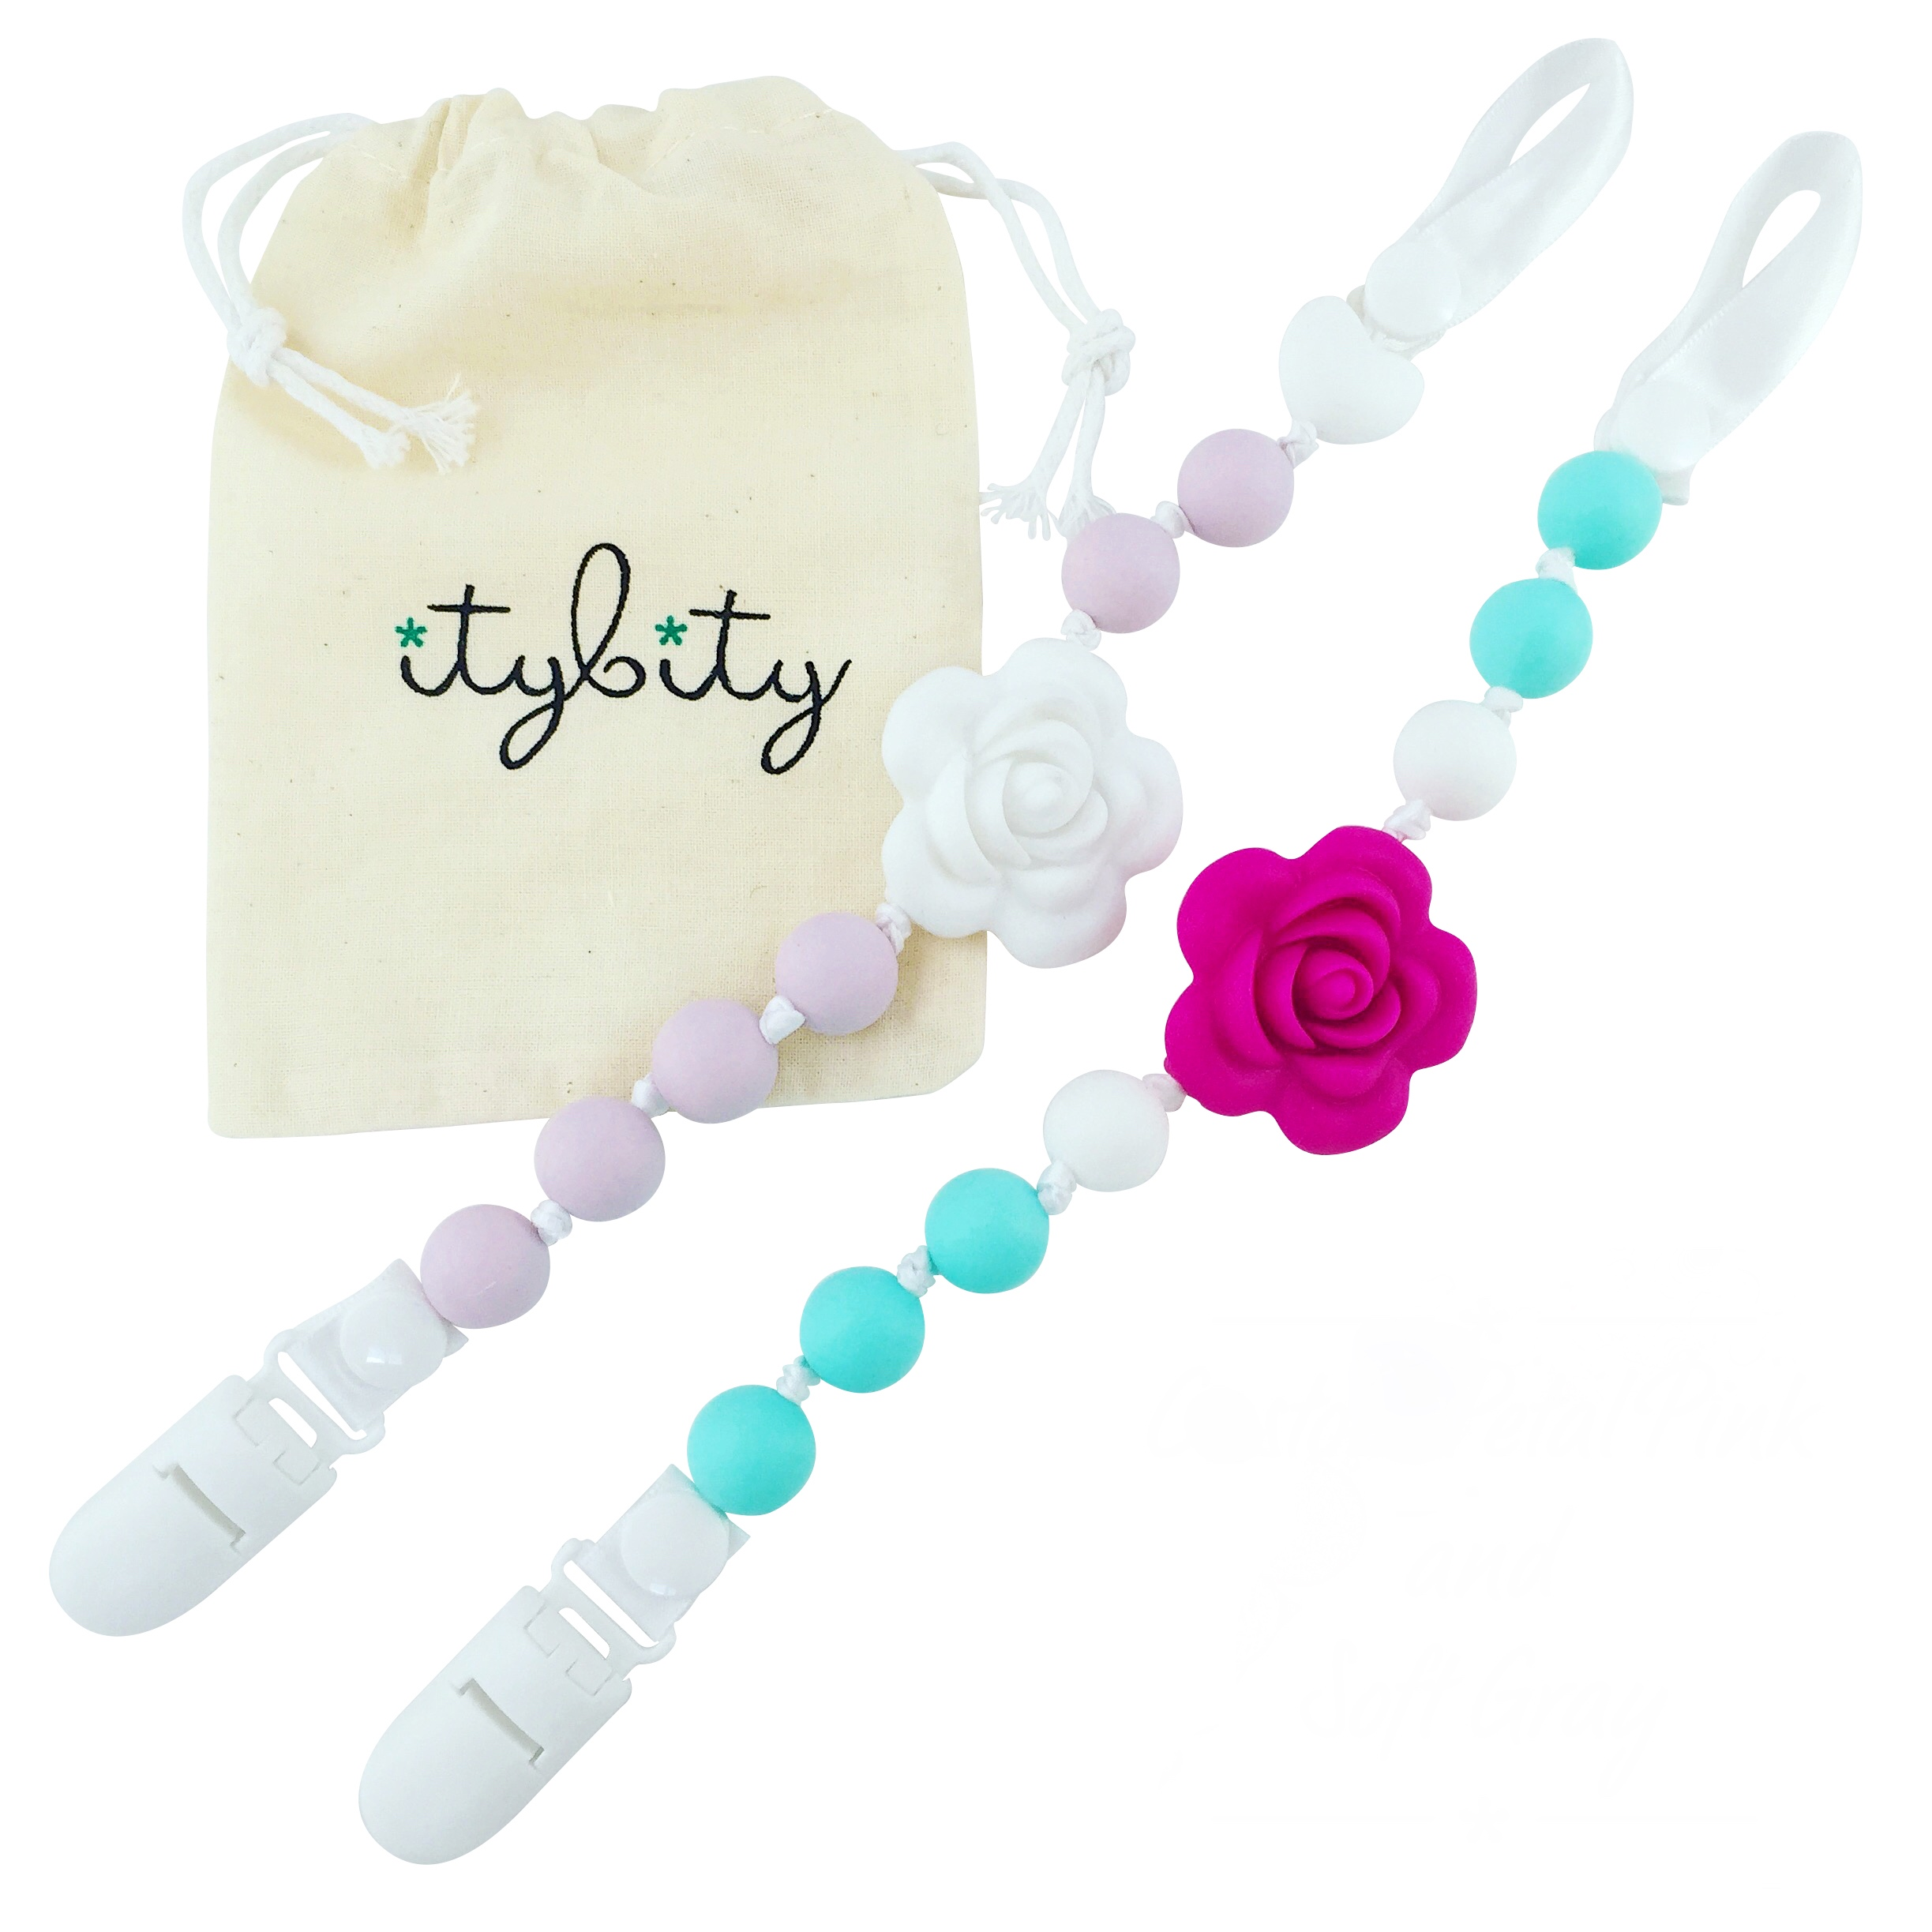 Pacifier Clip Girl, BPA Free Silicone Teether, Set of 2 (Lilac/White/Teal/Pink)